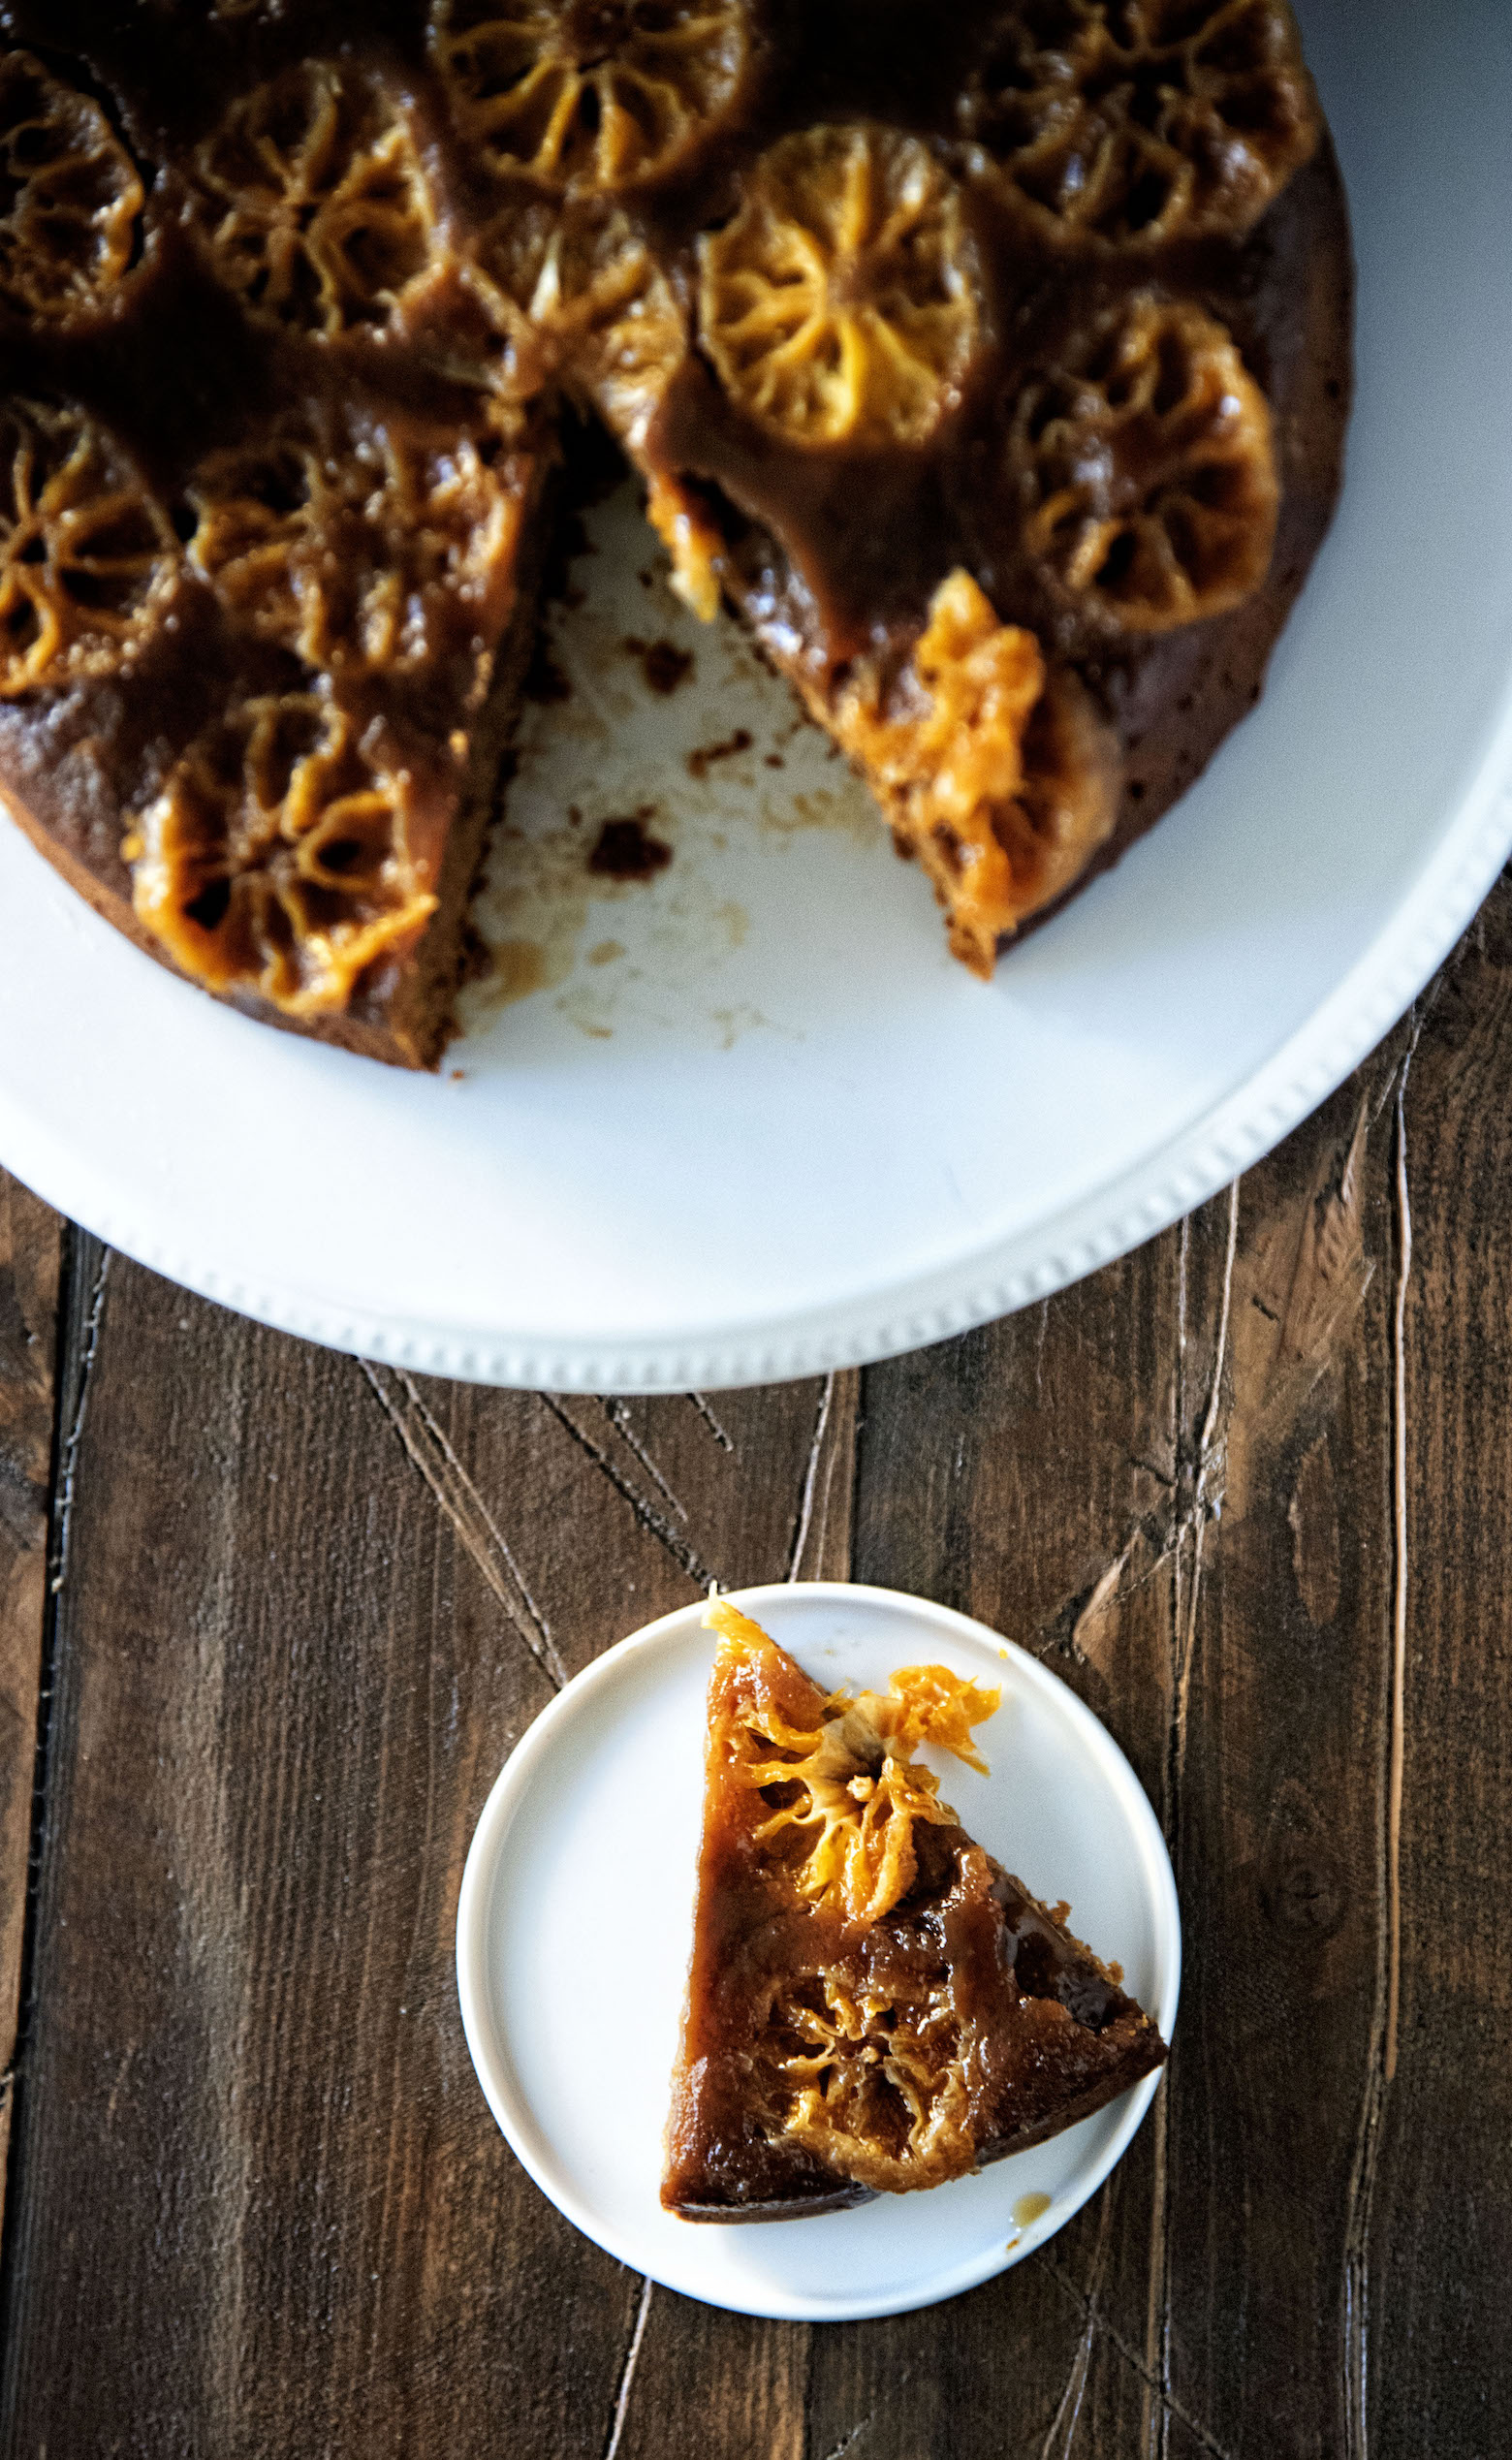 Clementine Upside Down Gingerbread Cake